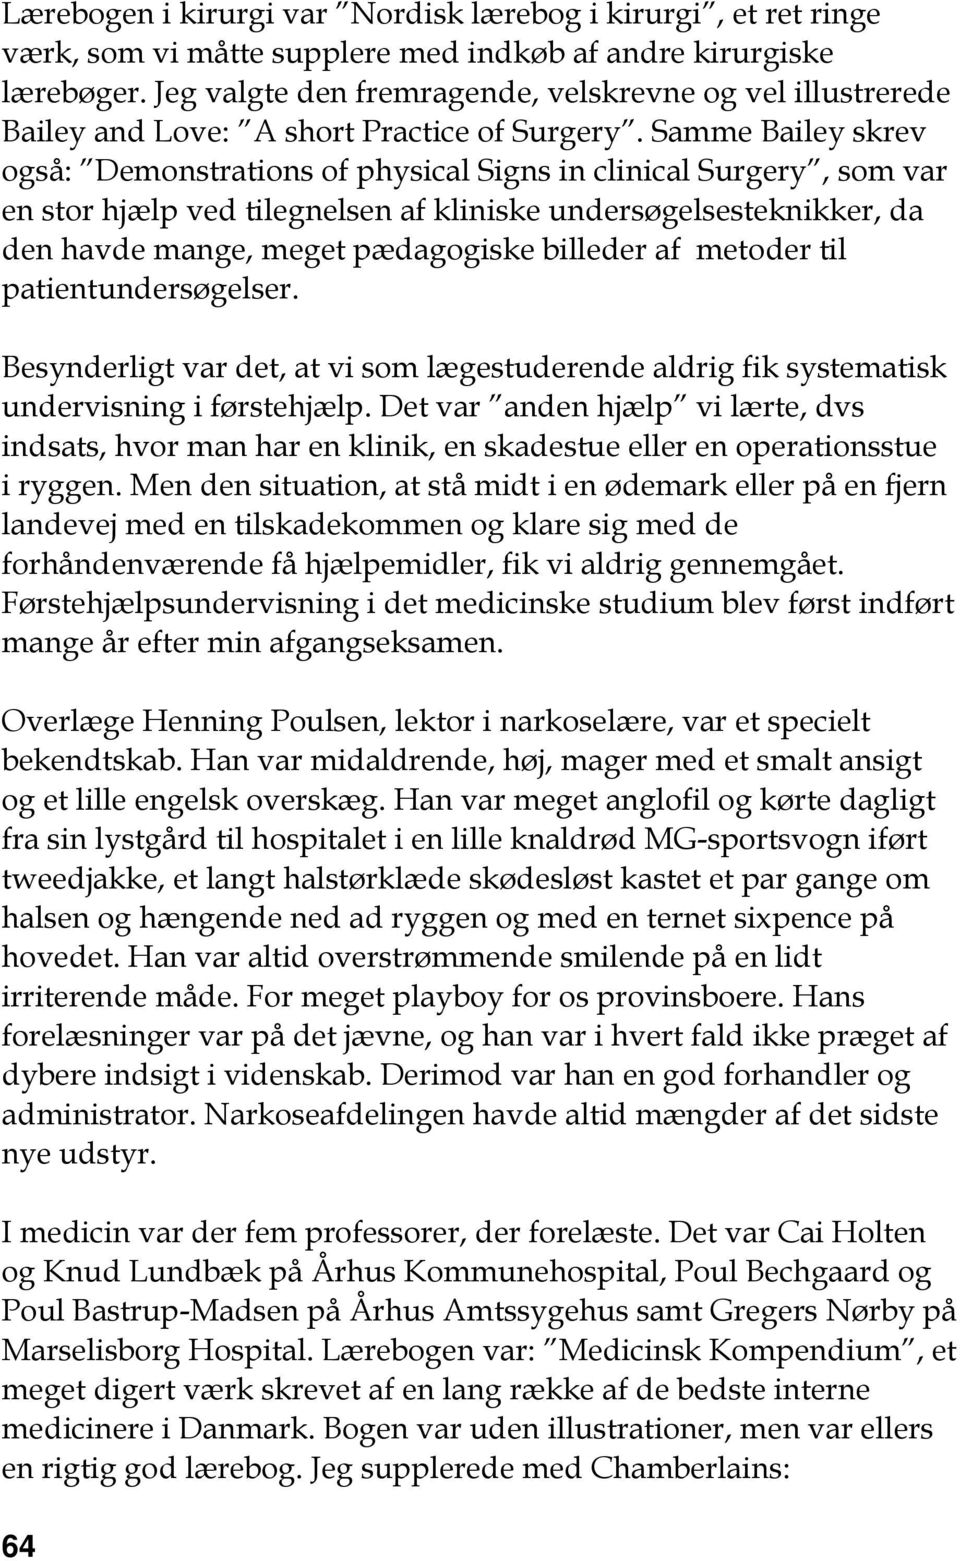 Samme Bailey skrev også: Demonstrations of physical Signs in clinical Surgery, som var en stor hjælp ved tilegnelsen af kliniske undersøgelsesteknikker, da den havde mange, meget pædagogiske billeder